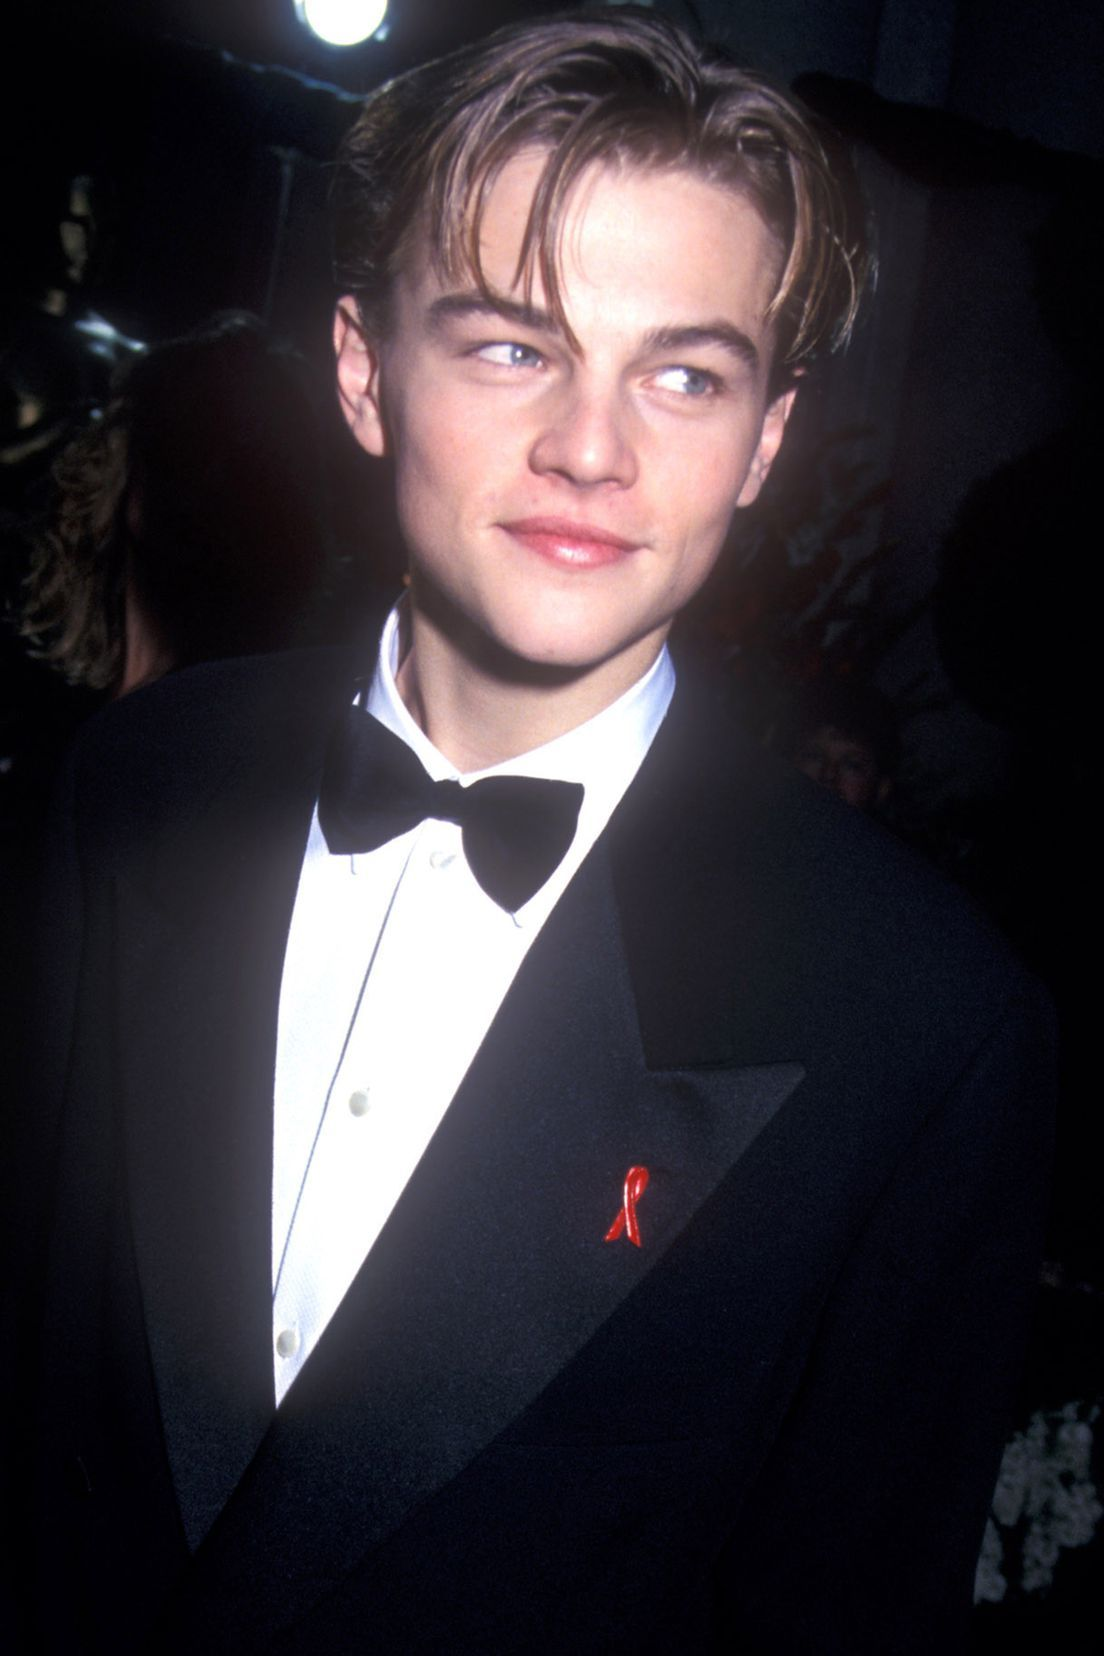 Leonardo DiCaprio's Look Has Evolved Since His Days On 'Growing Pains' #hollywoodactor